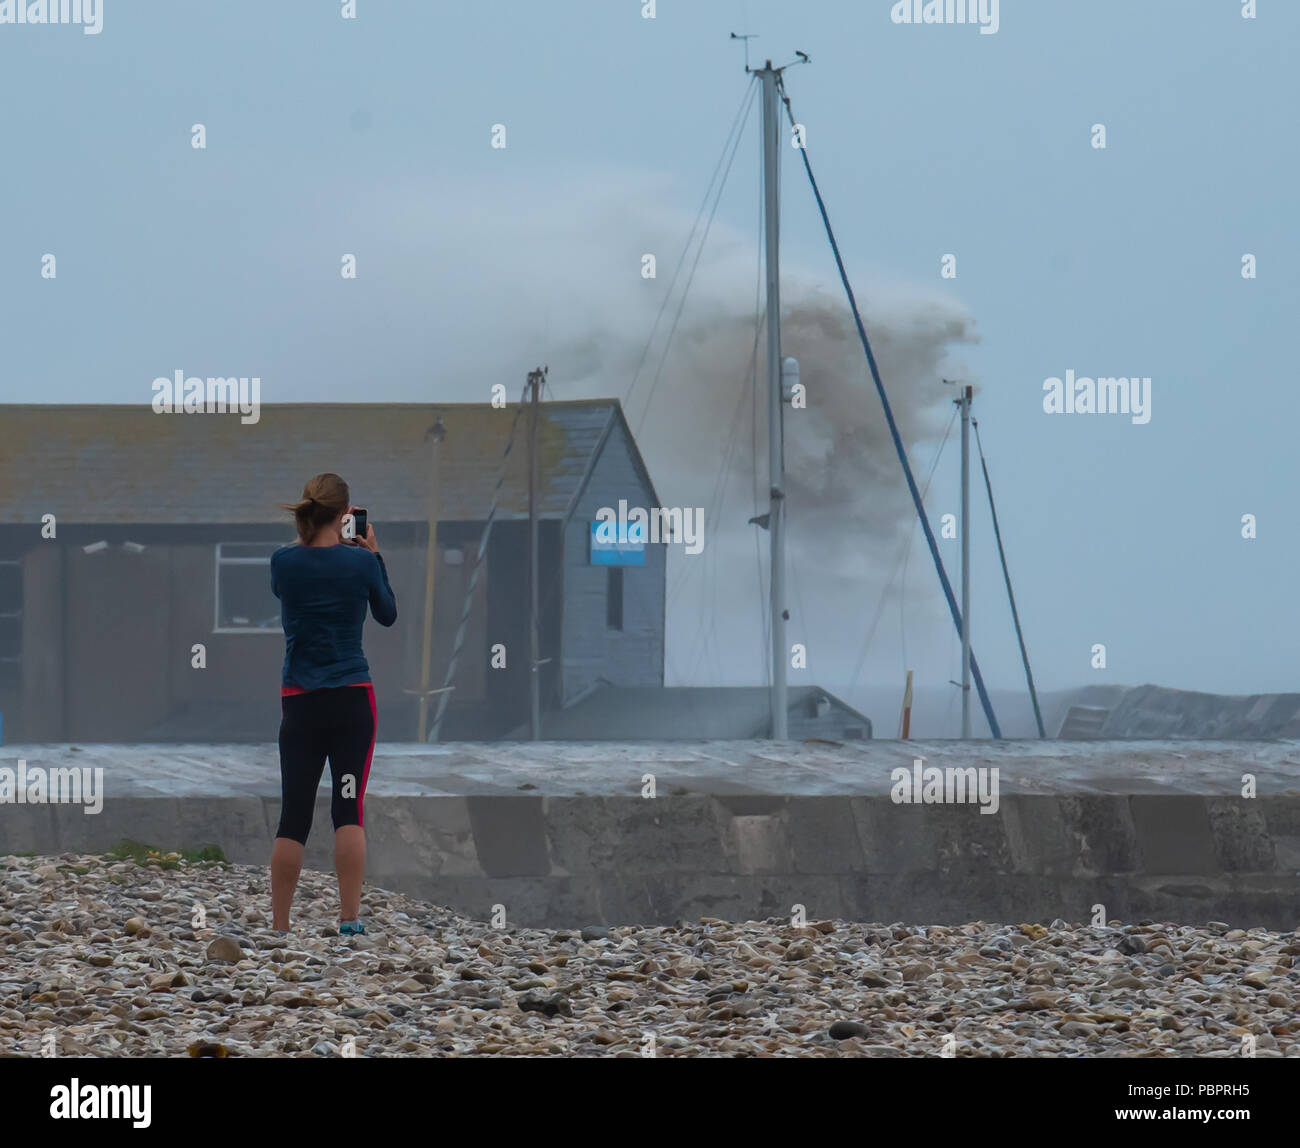 Lyme Regis, Dorset, UK. 29th July 2018.  UK Weather: Storm waves crash into seafront at Lyme Regis. A storm hits the seafront and the historic Cobb Harbour at the seaside resort of Lyme Regis bringing a temporary lull to the record breaking summer heatwave. A young woman takes a snap from the safety of the beach. Credit: Celia McMahon/Alamy Live News - Stock Image